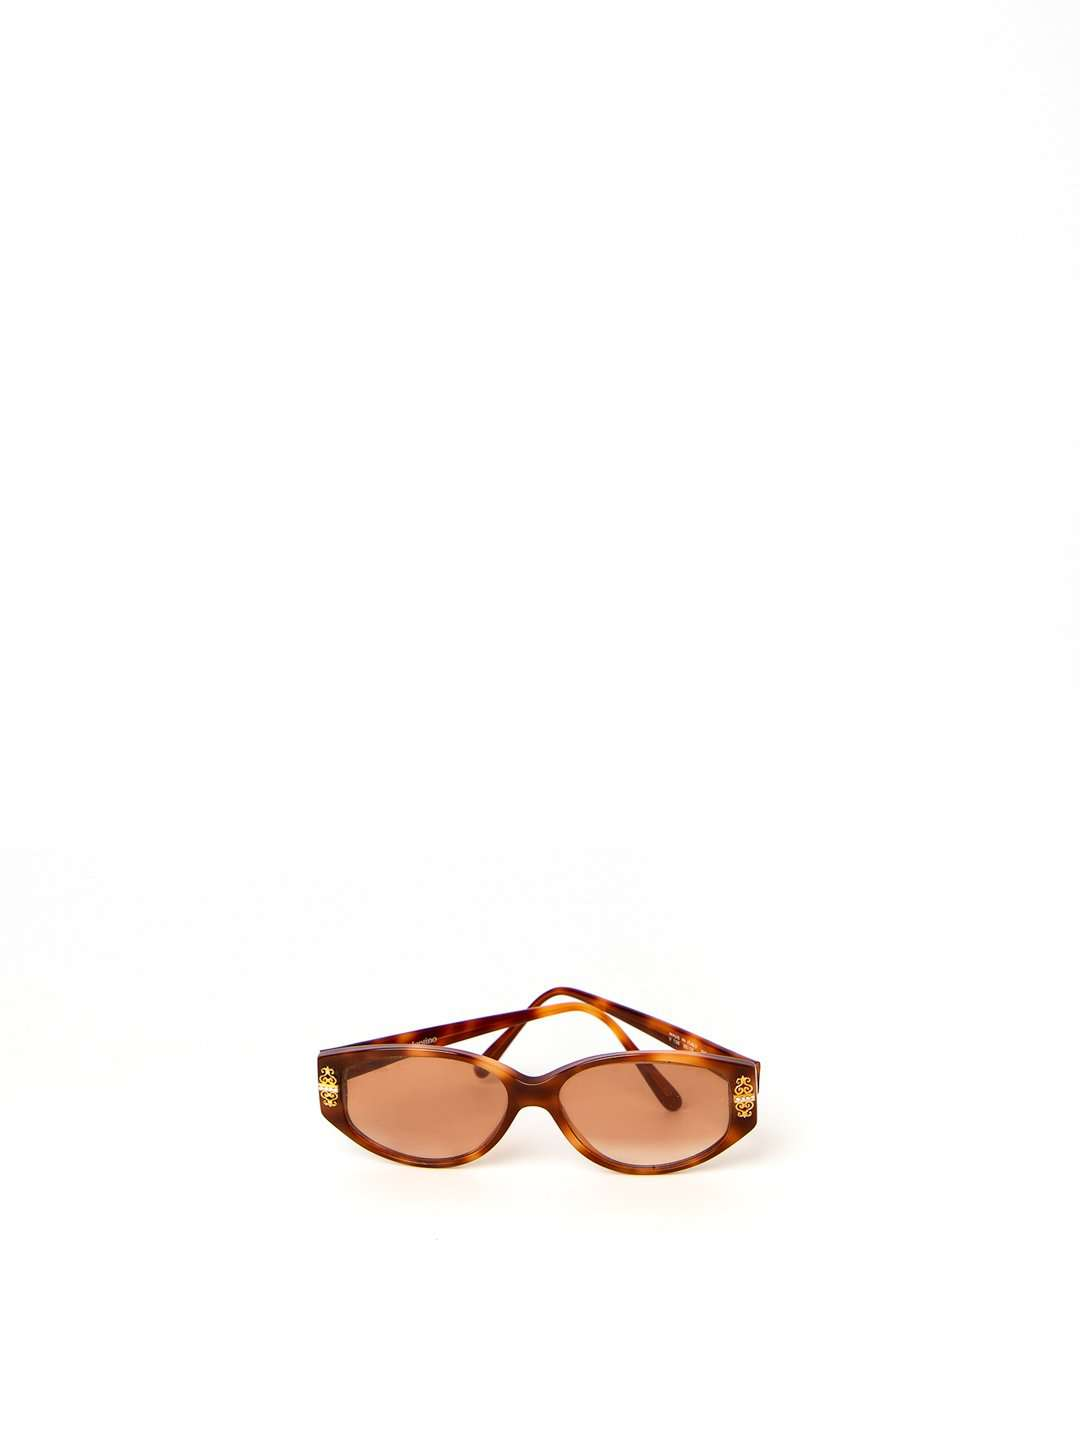 Valentino Tortoise Shell with Gold Pillar Details Sunglasses